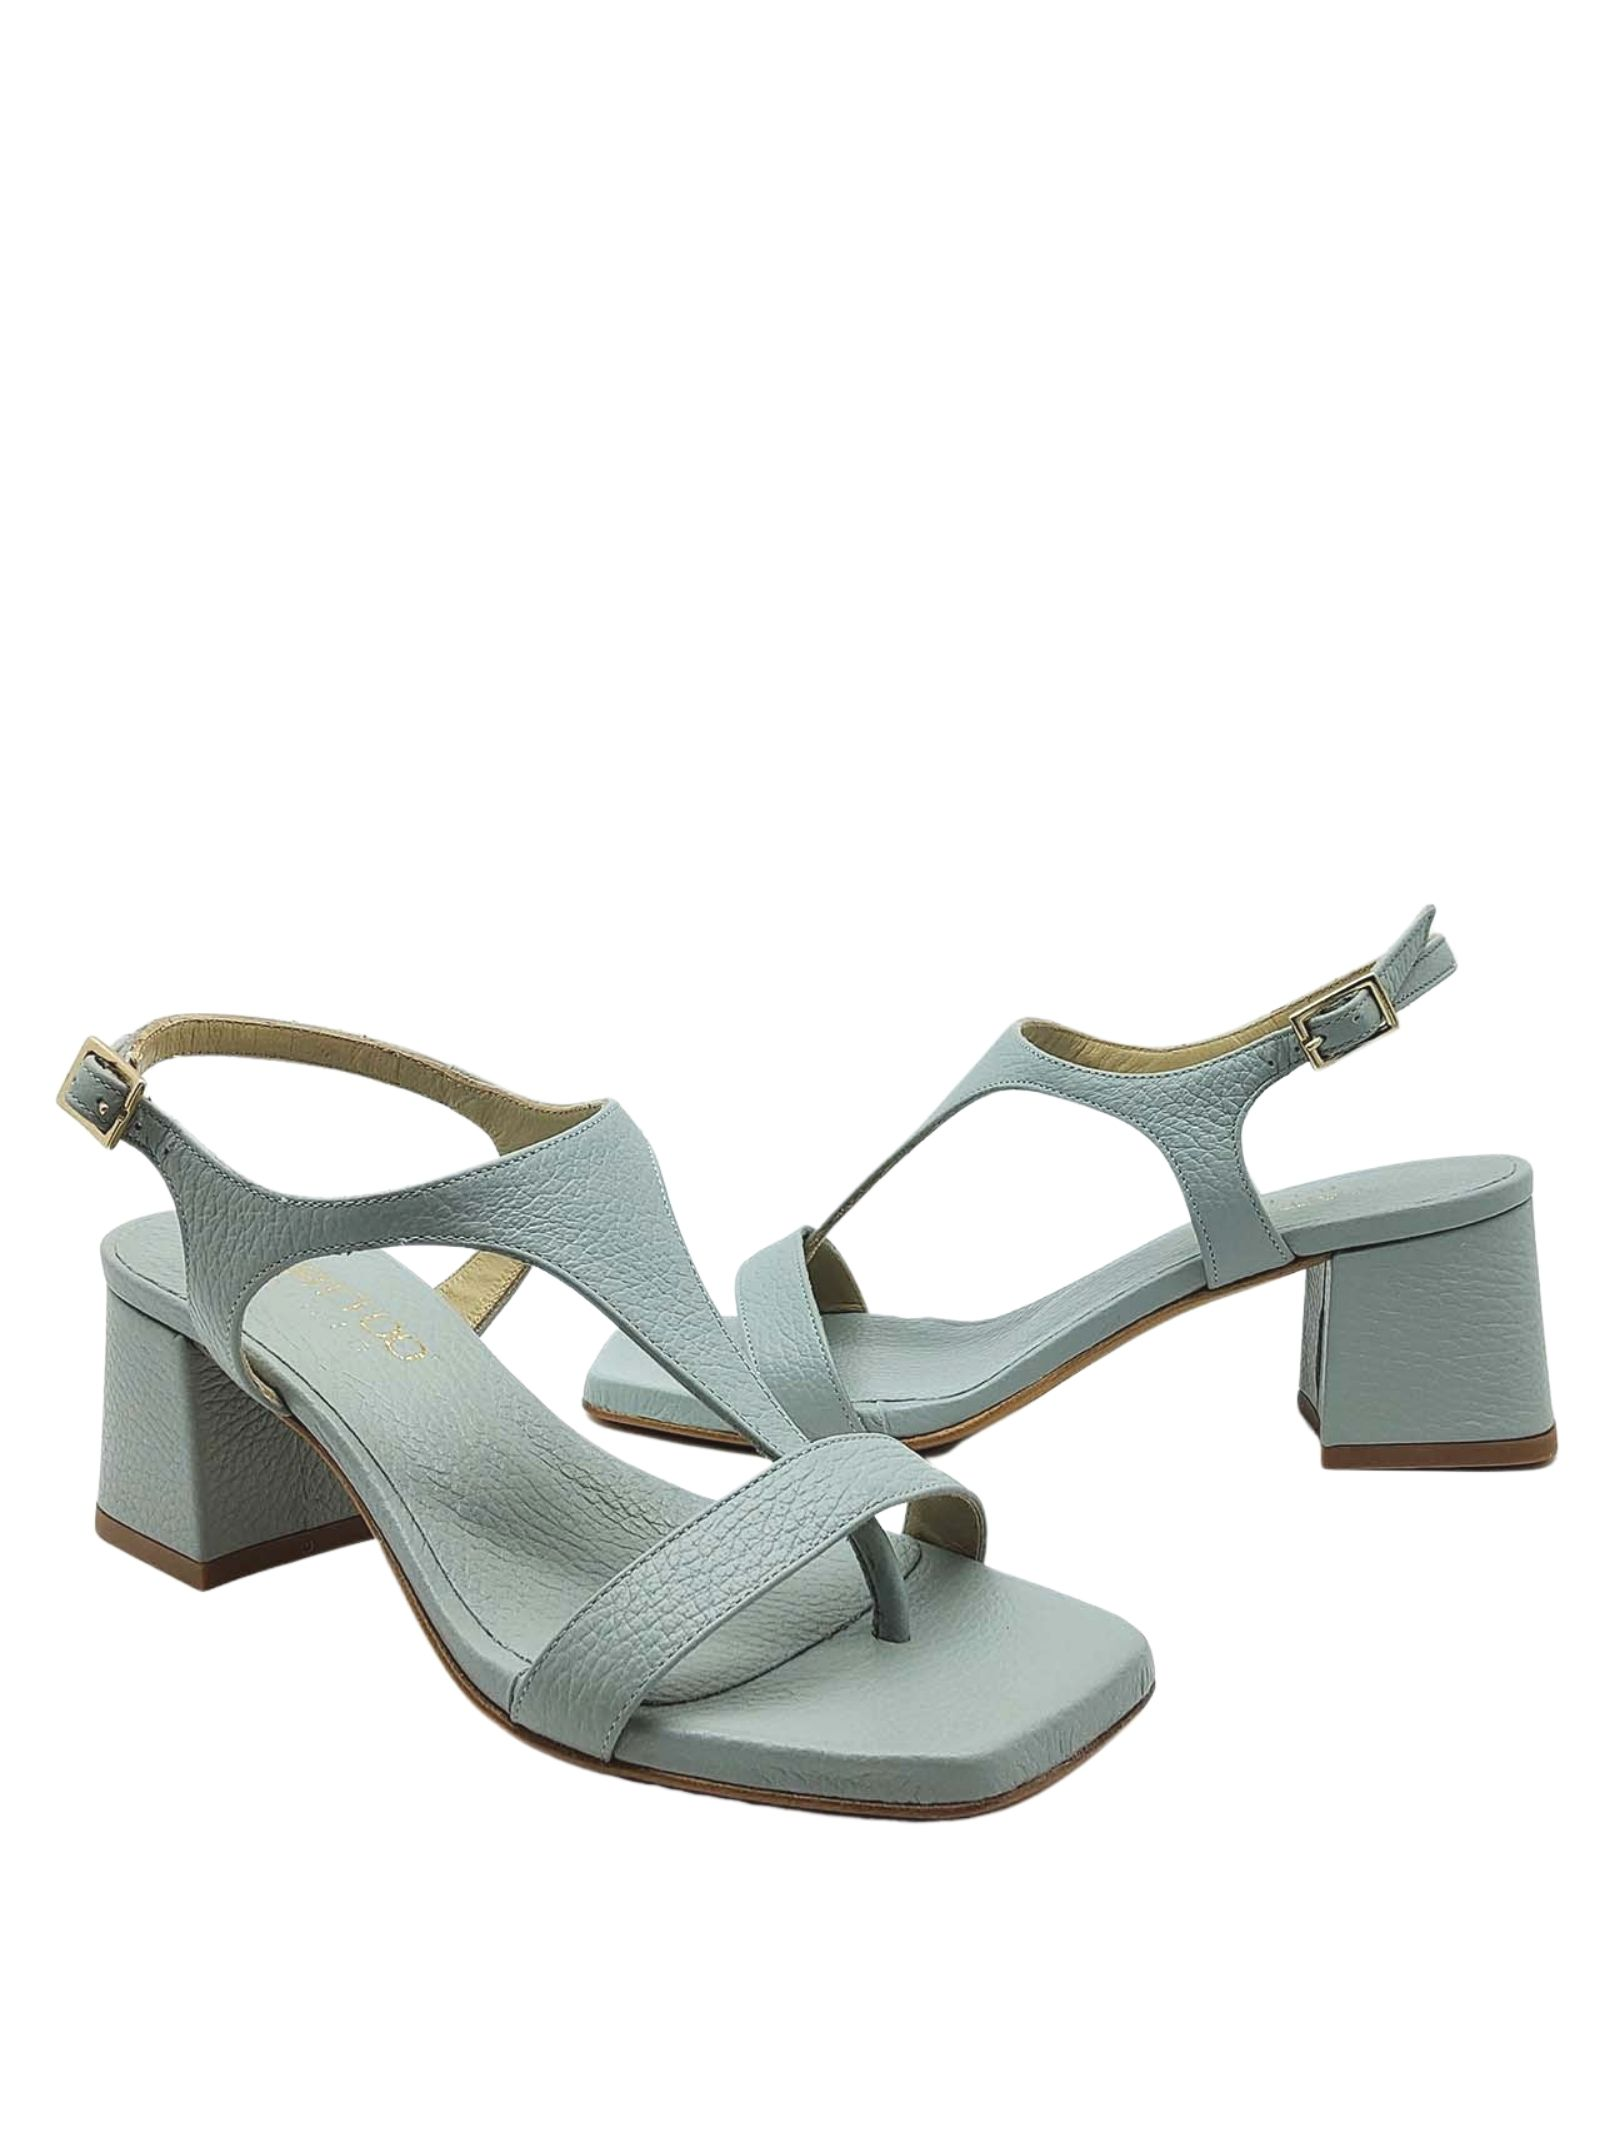 Women's Shoes Flip-Flops Sandals In Leather Sky Heel And Square Toe Tattoo | Sandals | 110400